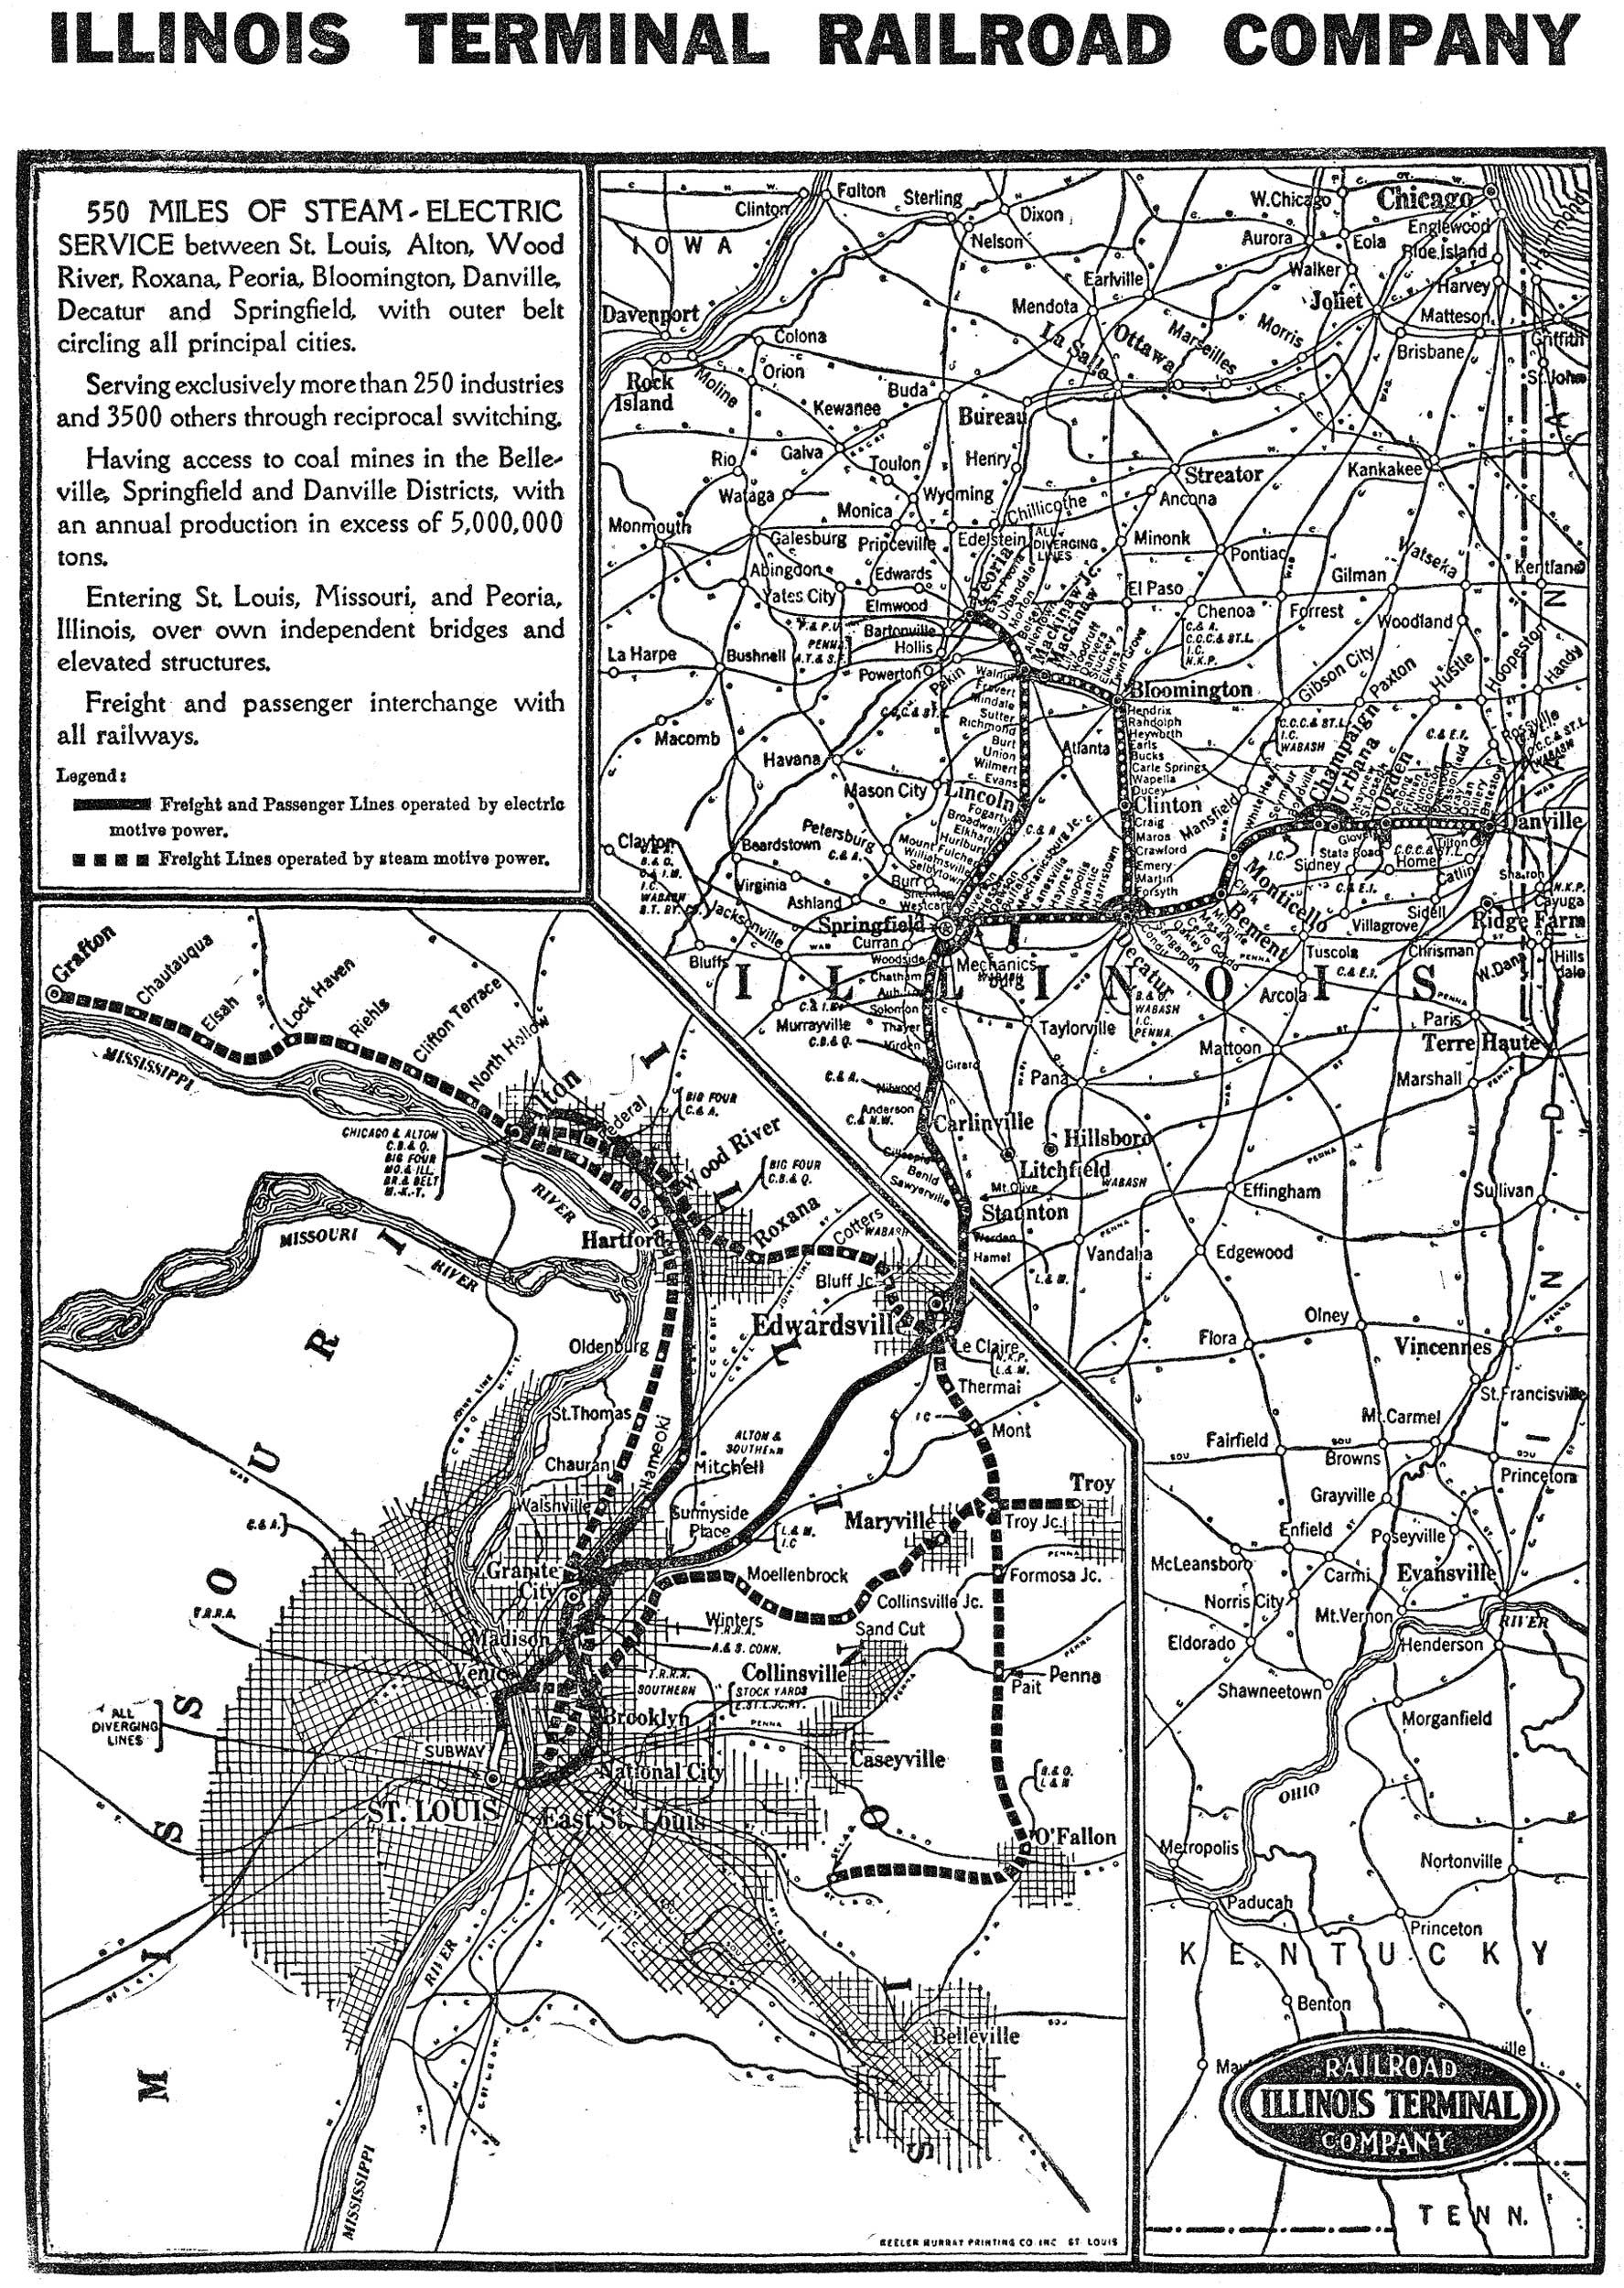 Illinois Terminal Railroad Map | Train map, Illinois, Map on baltimore and ohio railroad, norfolk southern railway, illinois mining map, illinois river map, csx transportation, illinois terminal 2301, grand trunk western railroad, illinois michigan canal trail map, canadian national railway company, lehigh valley railroad, illinois high speed rail map, southern railway, central illinois map, great northern railway, union pacific railroad, atchison, topeka and santa fe railway, illinois pennsylvania map, city of new orleans, soo line railroad, chicago, rock island and pacific railroad, northbrook mall map, burlington northern railroad, illinois western railroad, mississippi rail map, illinois city boundary map, illinois america map, illinois train map, old chicago downtown map, kansas city southern railway, dwight nd map, louisville and nashville railroad, city of miami, illinois county map, illinois central railroad, new york central railroad, illinois highway map, illinois map marion il, southern pacific railroad, pennsylvania railroad, air force bases in illinois map,